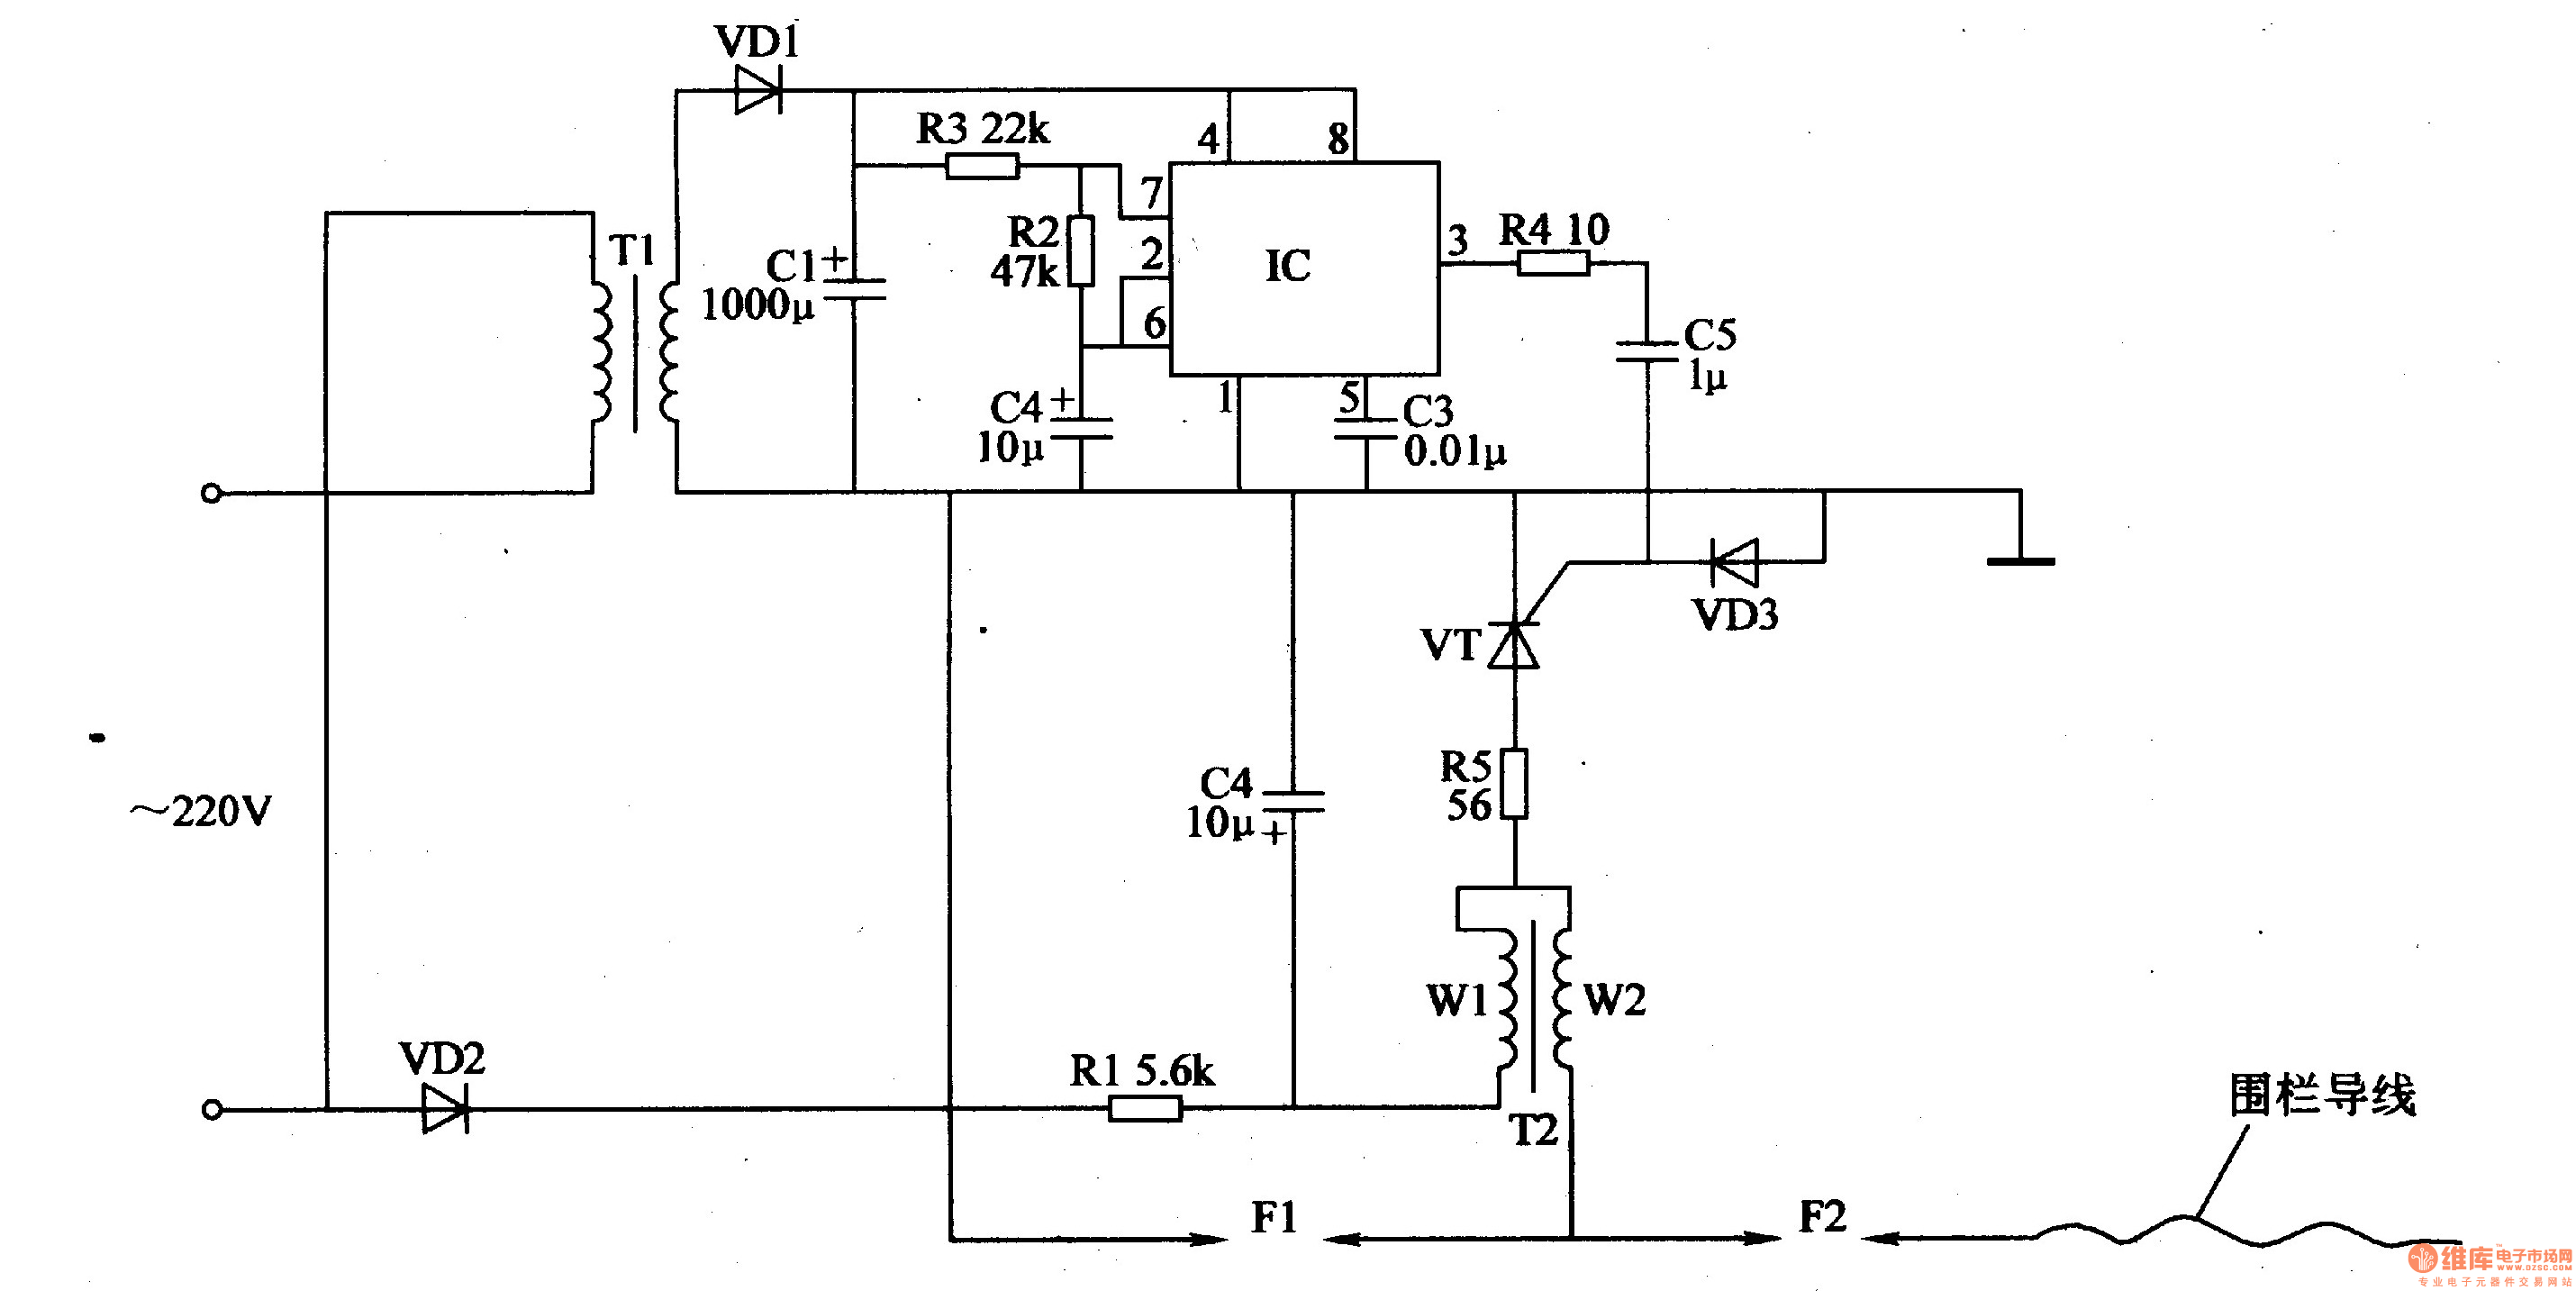 Electric Fence Control Circuit 2 Under Repository Circuits